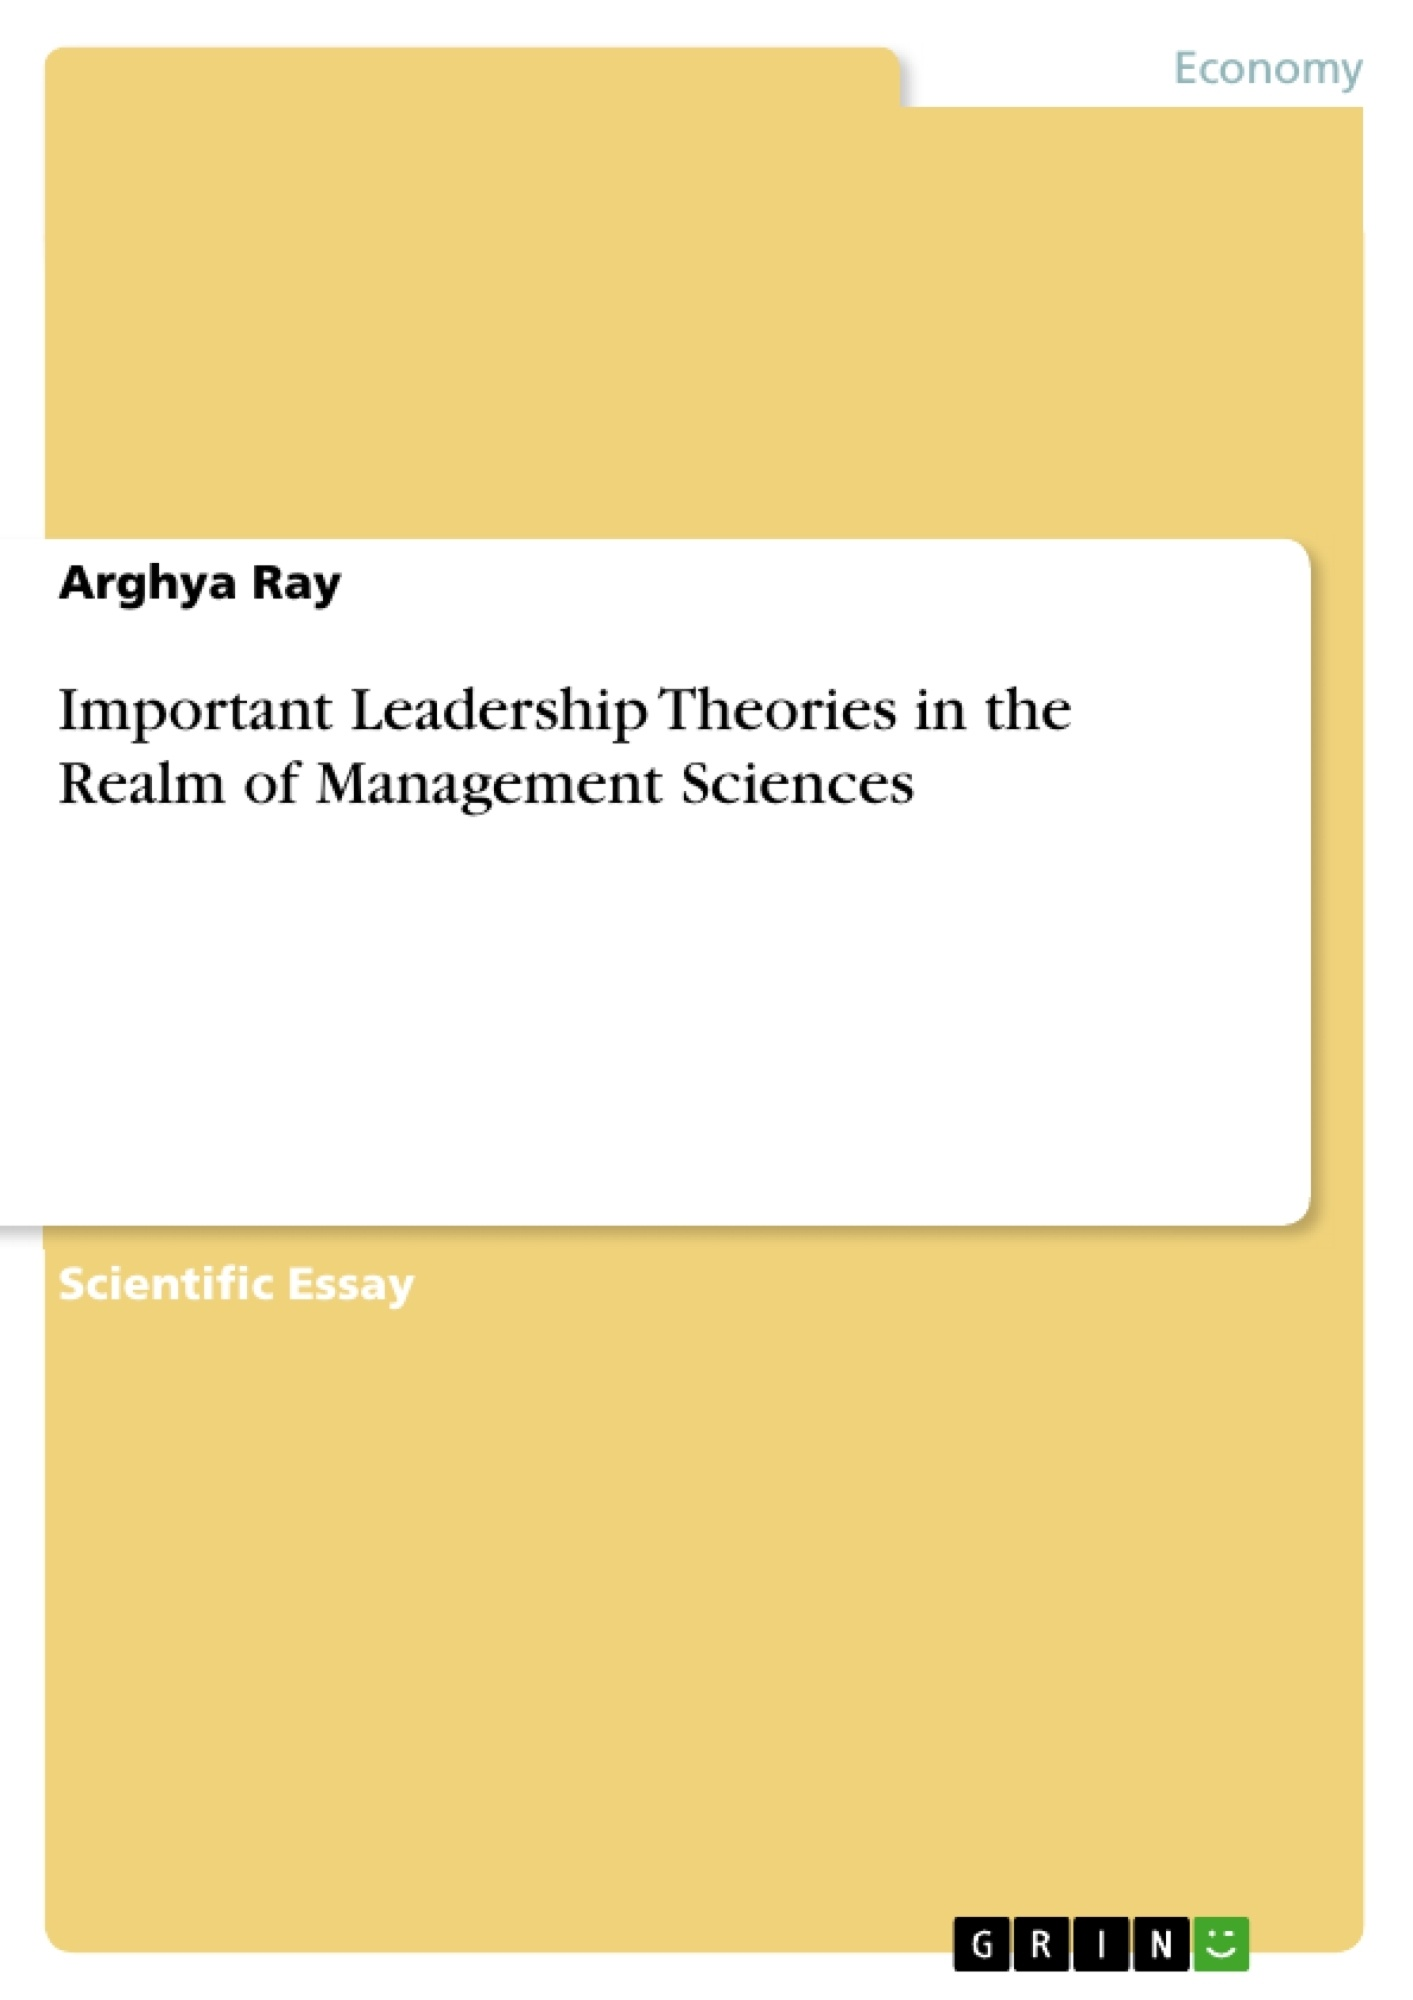 GRIN - Important Leadership Theories in the Realm of Management Sciences